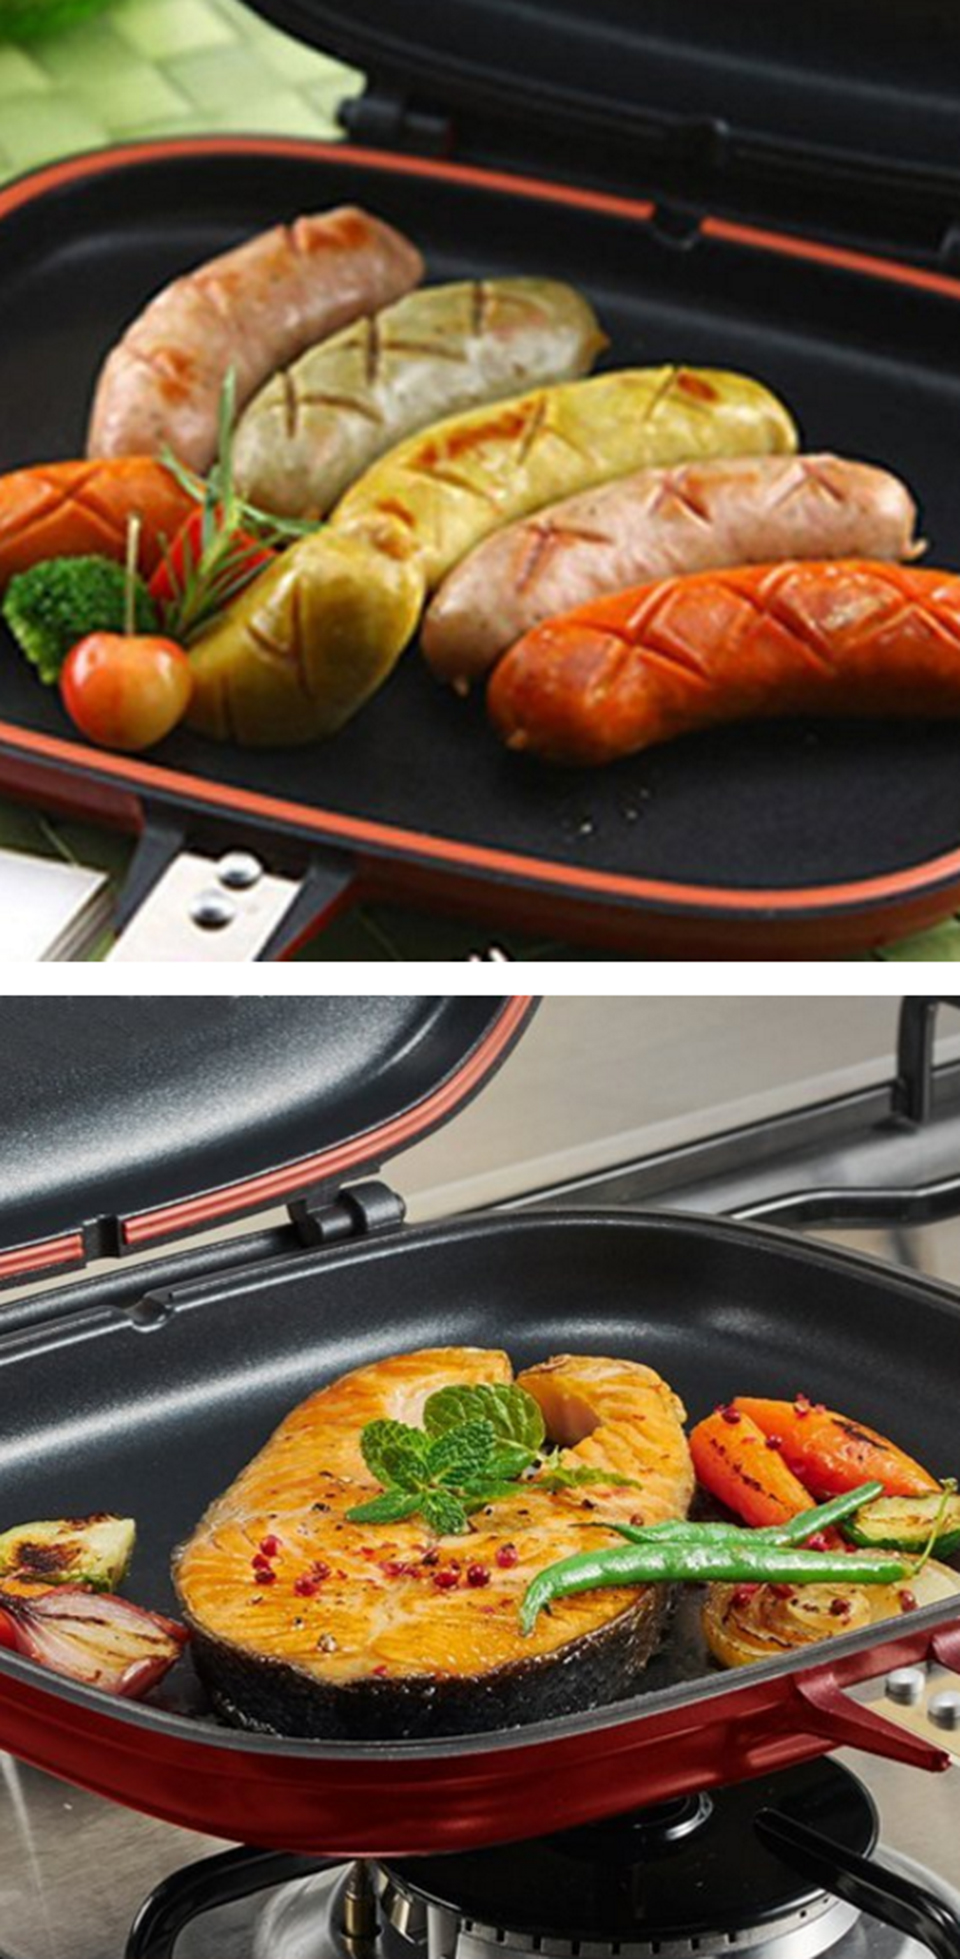 28cm Stainless Steel Double Sided Grill Pan